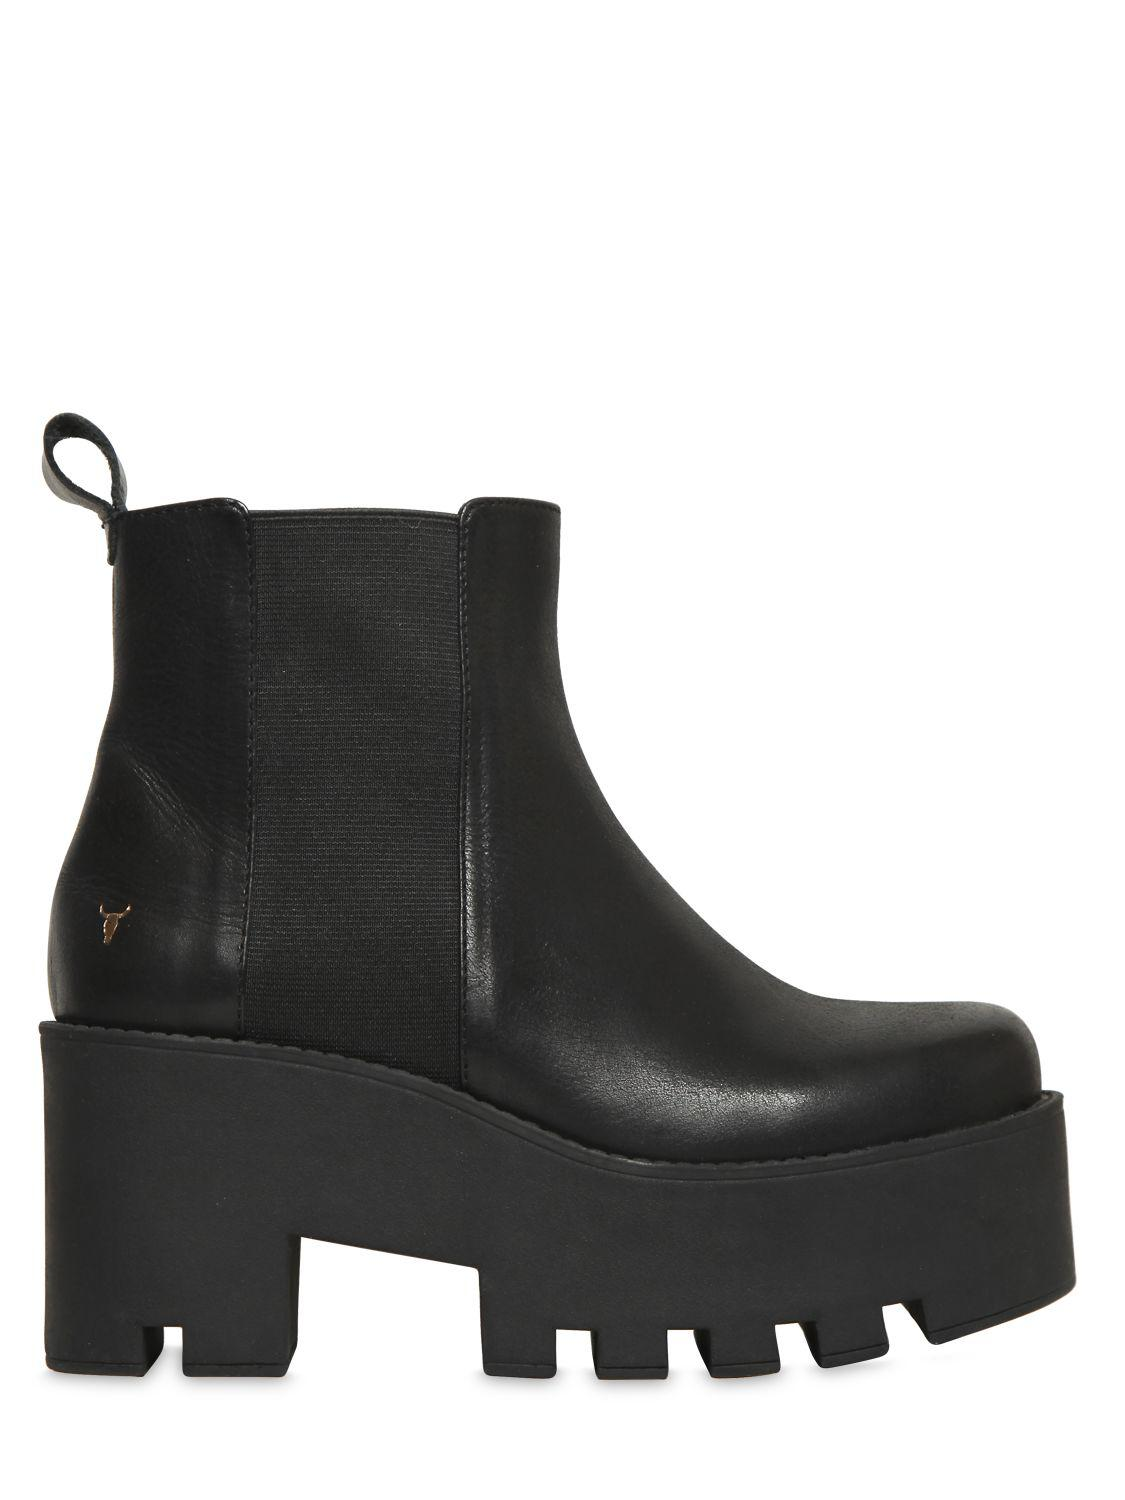 Windsor 80MM ALIEN LEATHER ANKLE BOOTS QlY8j